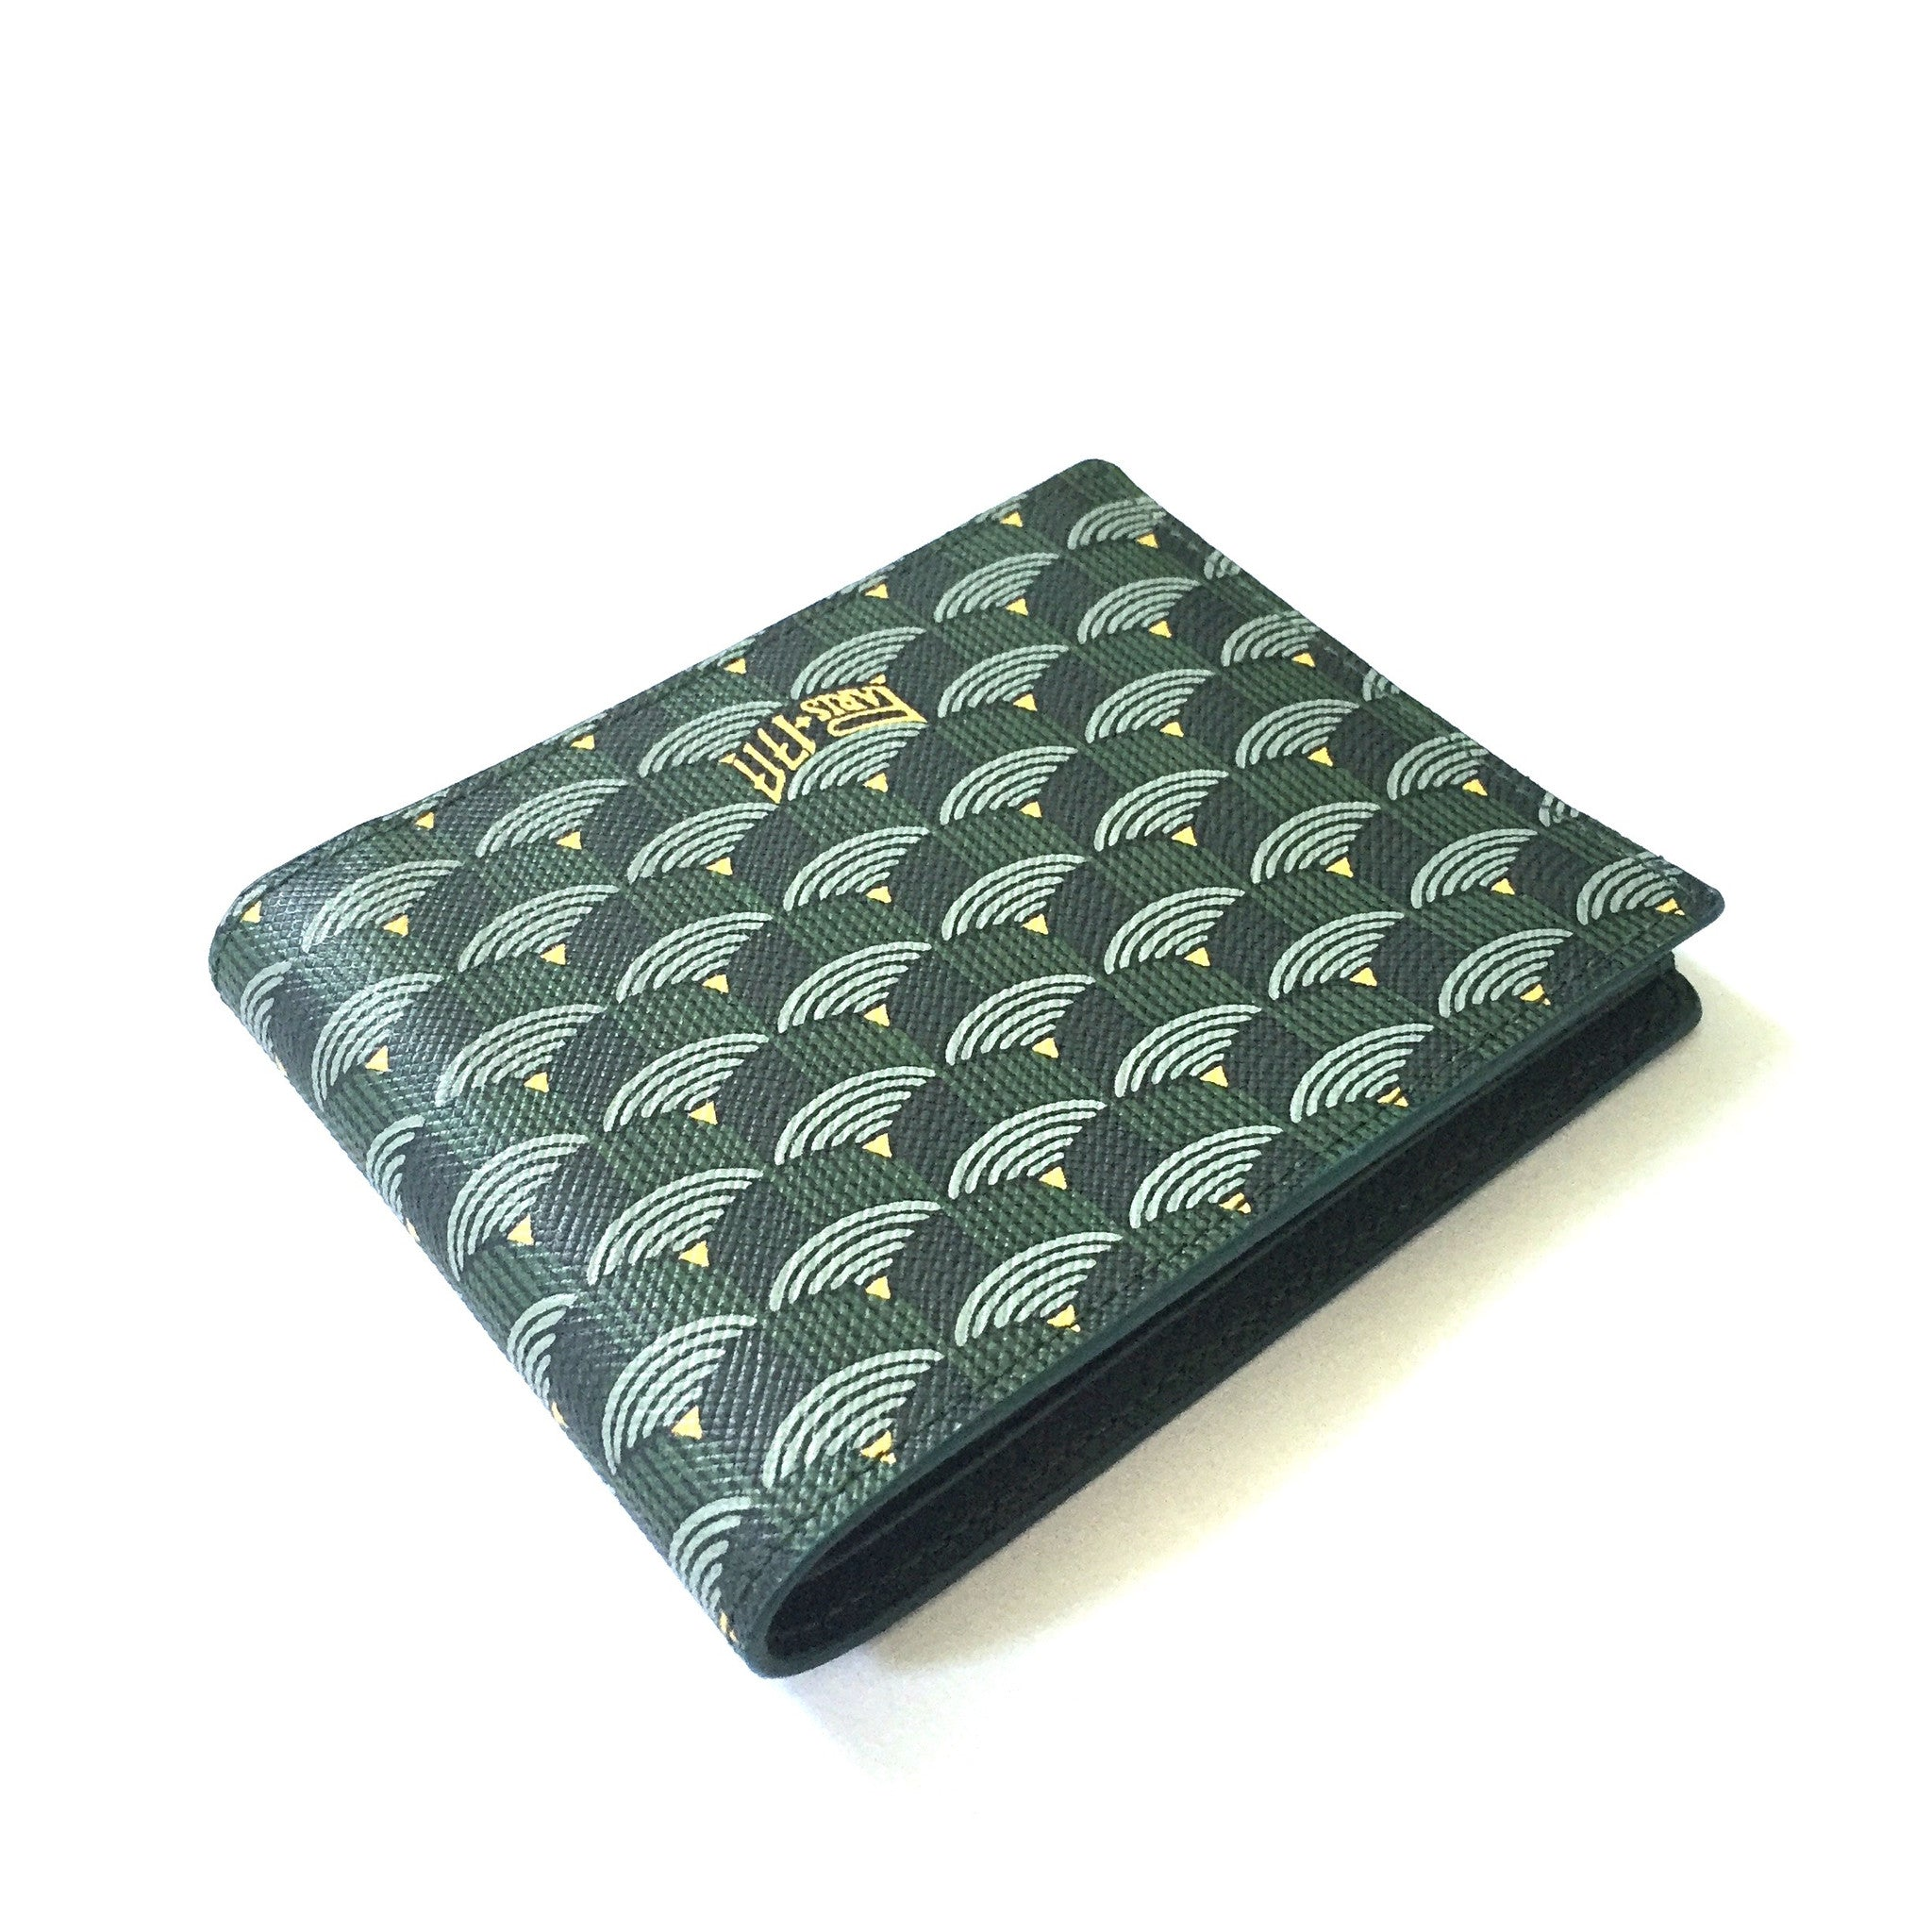 Faure Le Page - Empire Green 6CC Bifold Wallet